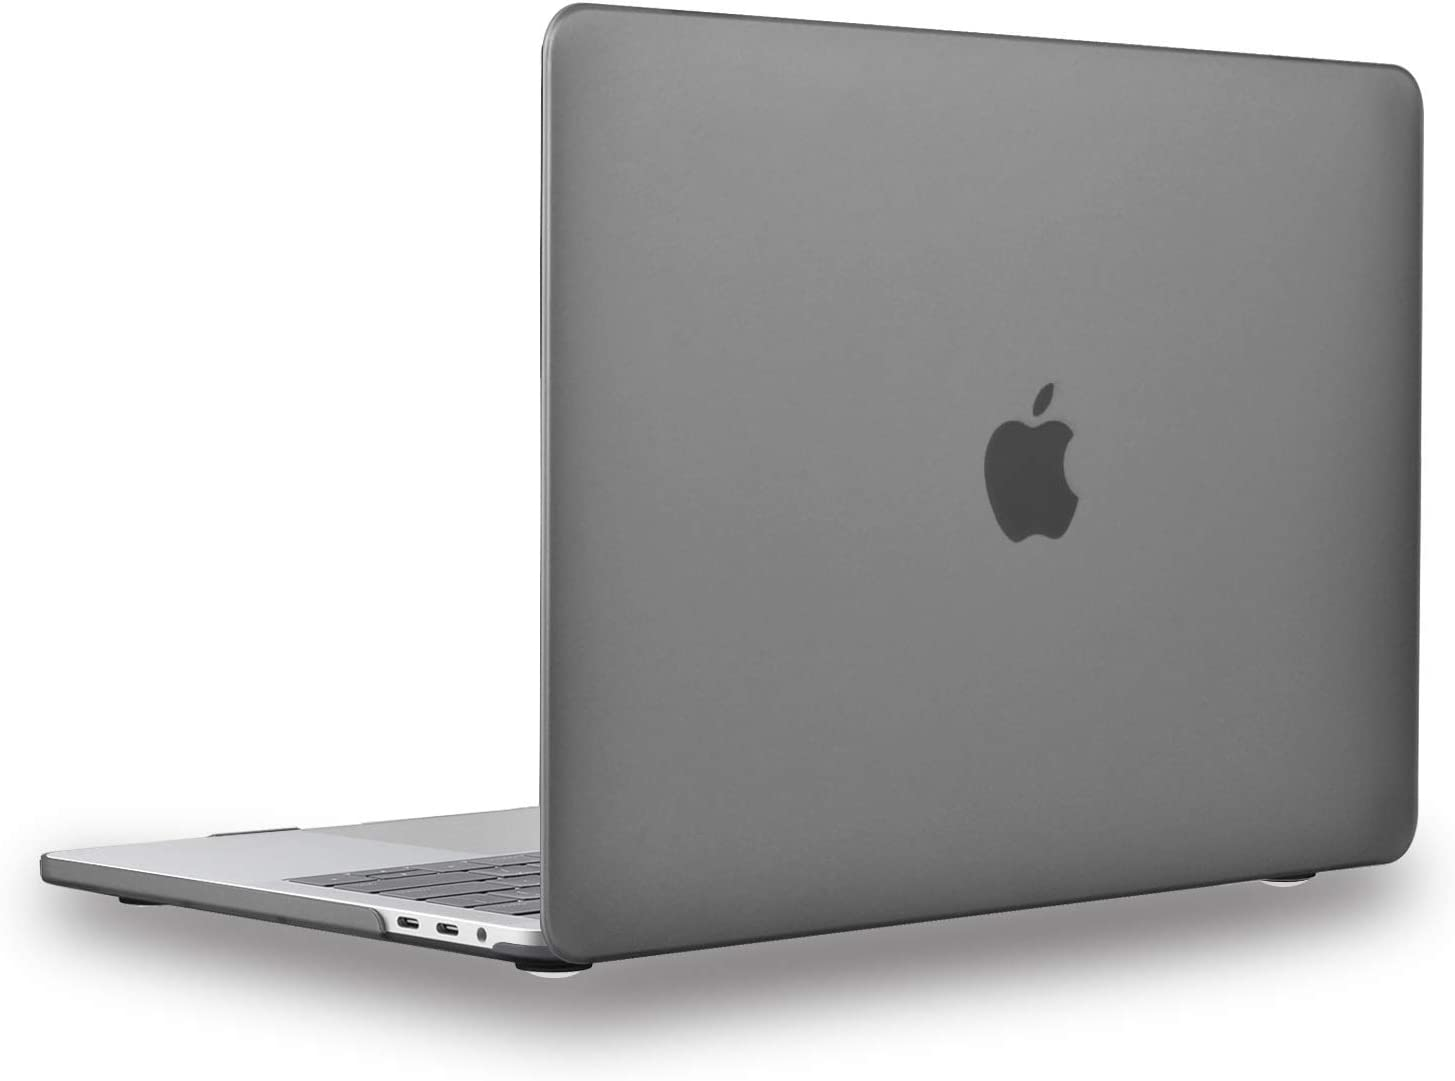 UESWILL MacBook Pro 13 inch Case 2020 2019 2018 2017 2016 Release A2289 A2251 A2159 A1989 A1706 A1708, Matte Hard Case for MacBook Pro 13 inch, 2/4 Thunderbolt 3 Ports (USB-C), Gray